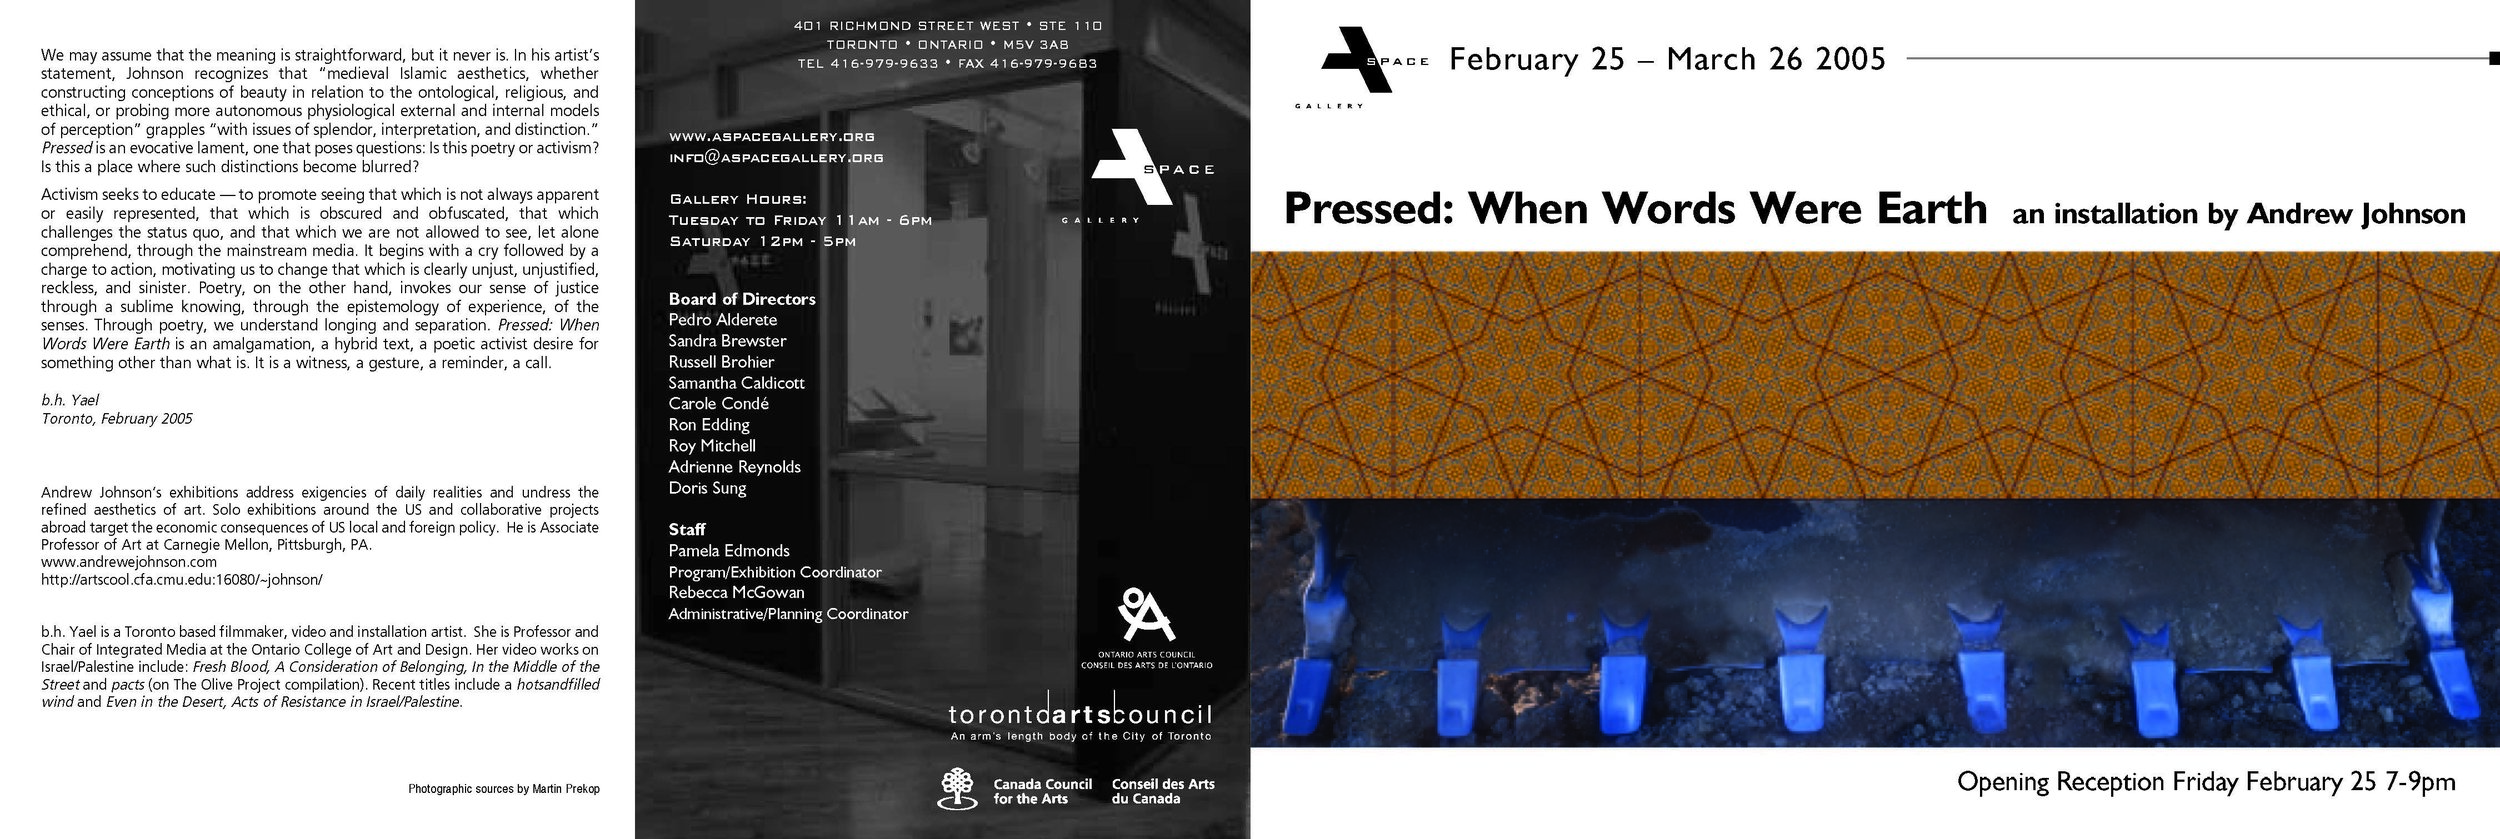 ANNOUNCEMENT FOR PRESSED AT A SPACE